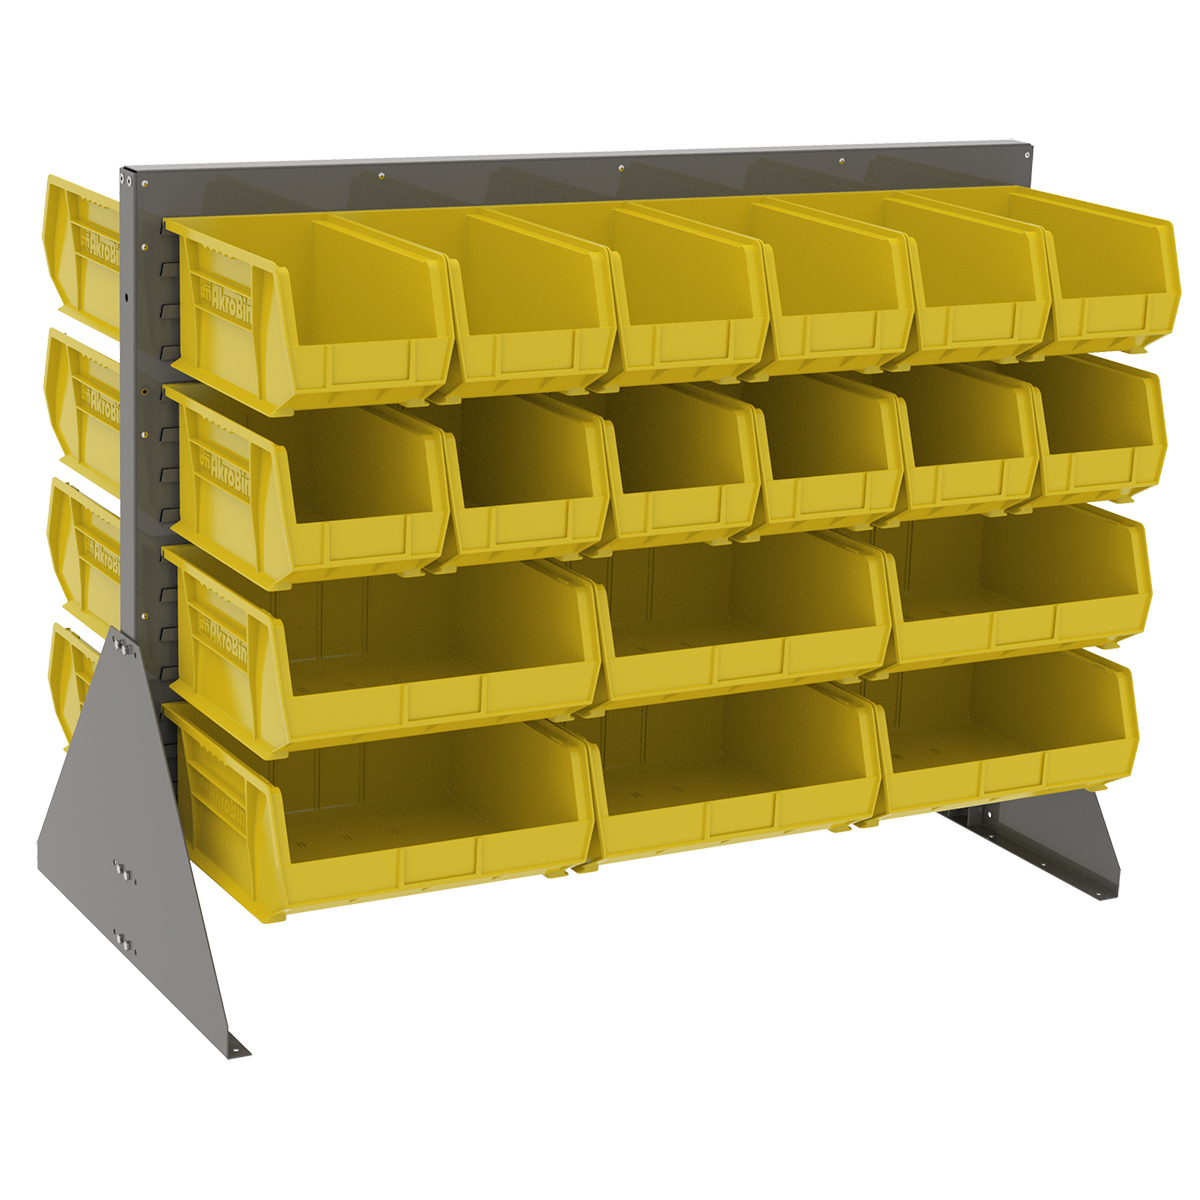 Item DISCONTINUED by Manufacturer.  Low Profile Floor Rack, 2-Sided w/ 36 AkroBins, Gray/Yellow (30607GYASSTY).  This item sold in carton quantities of 1.